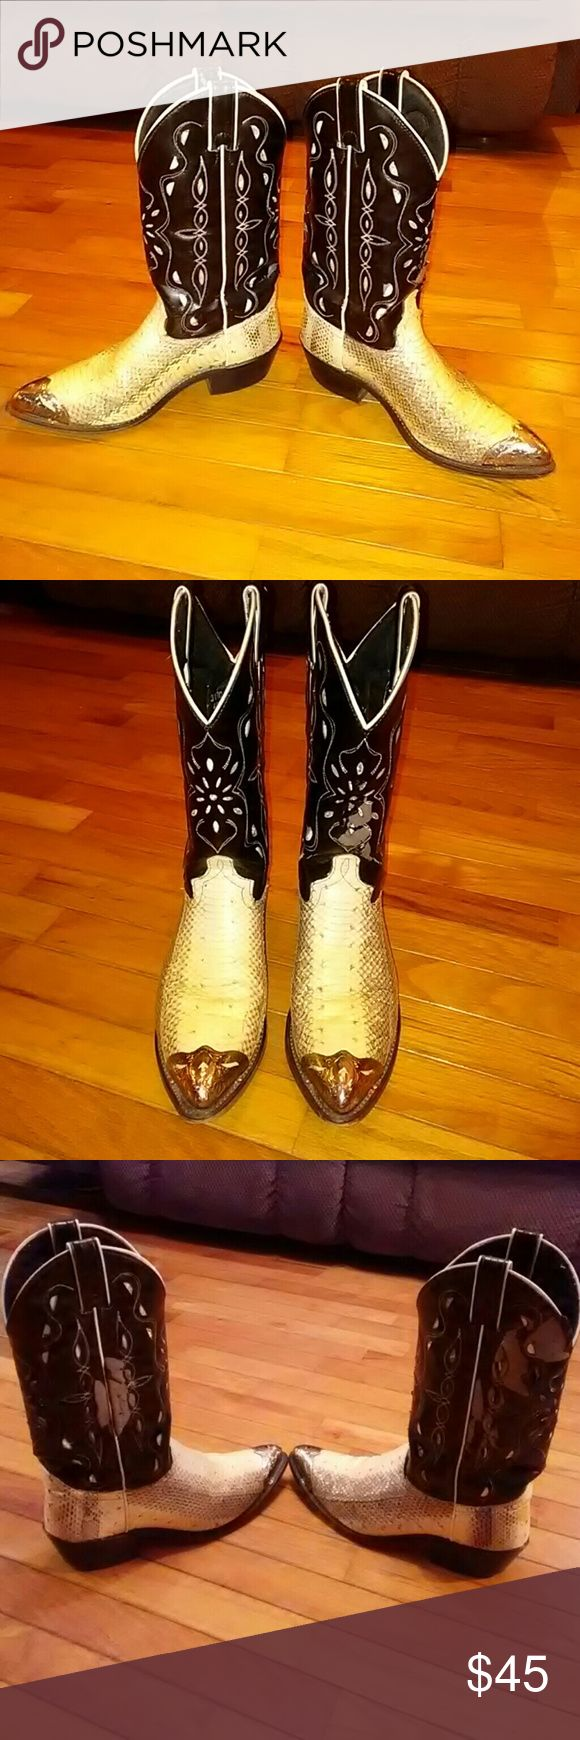 Men's cowboy boots Snakeskin cowboy boots size 7 1/2 D. Has wear on upper part of both boots as shown in pictures. Snake shin is in like new condition. Durango Shoes Cowboy & Western Boots